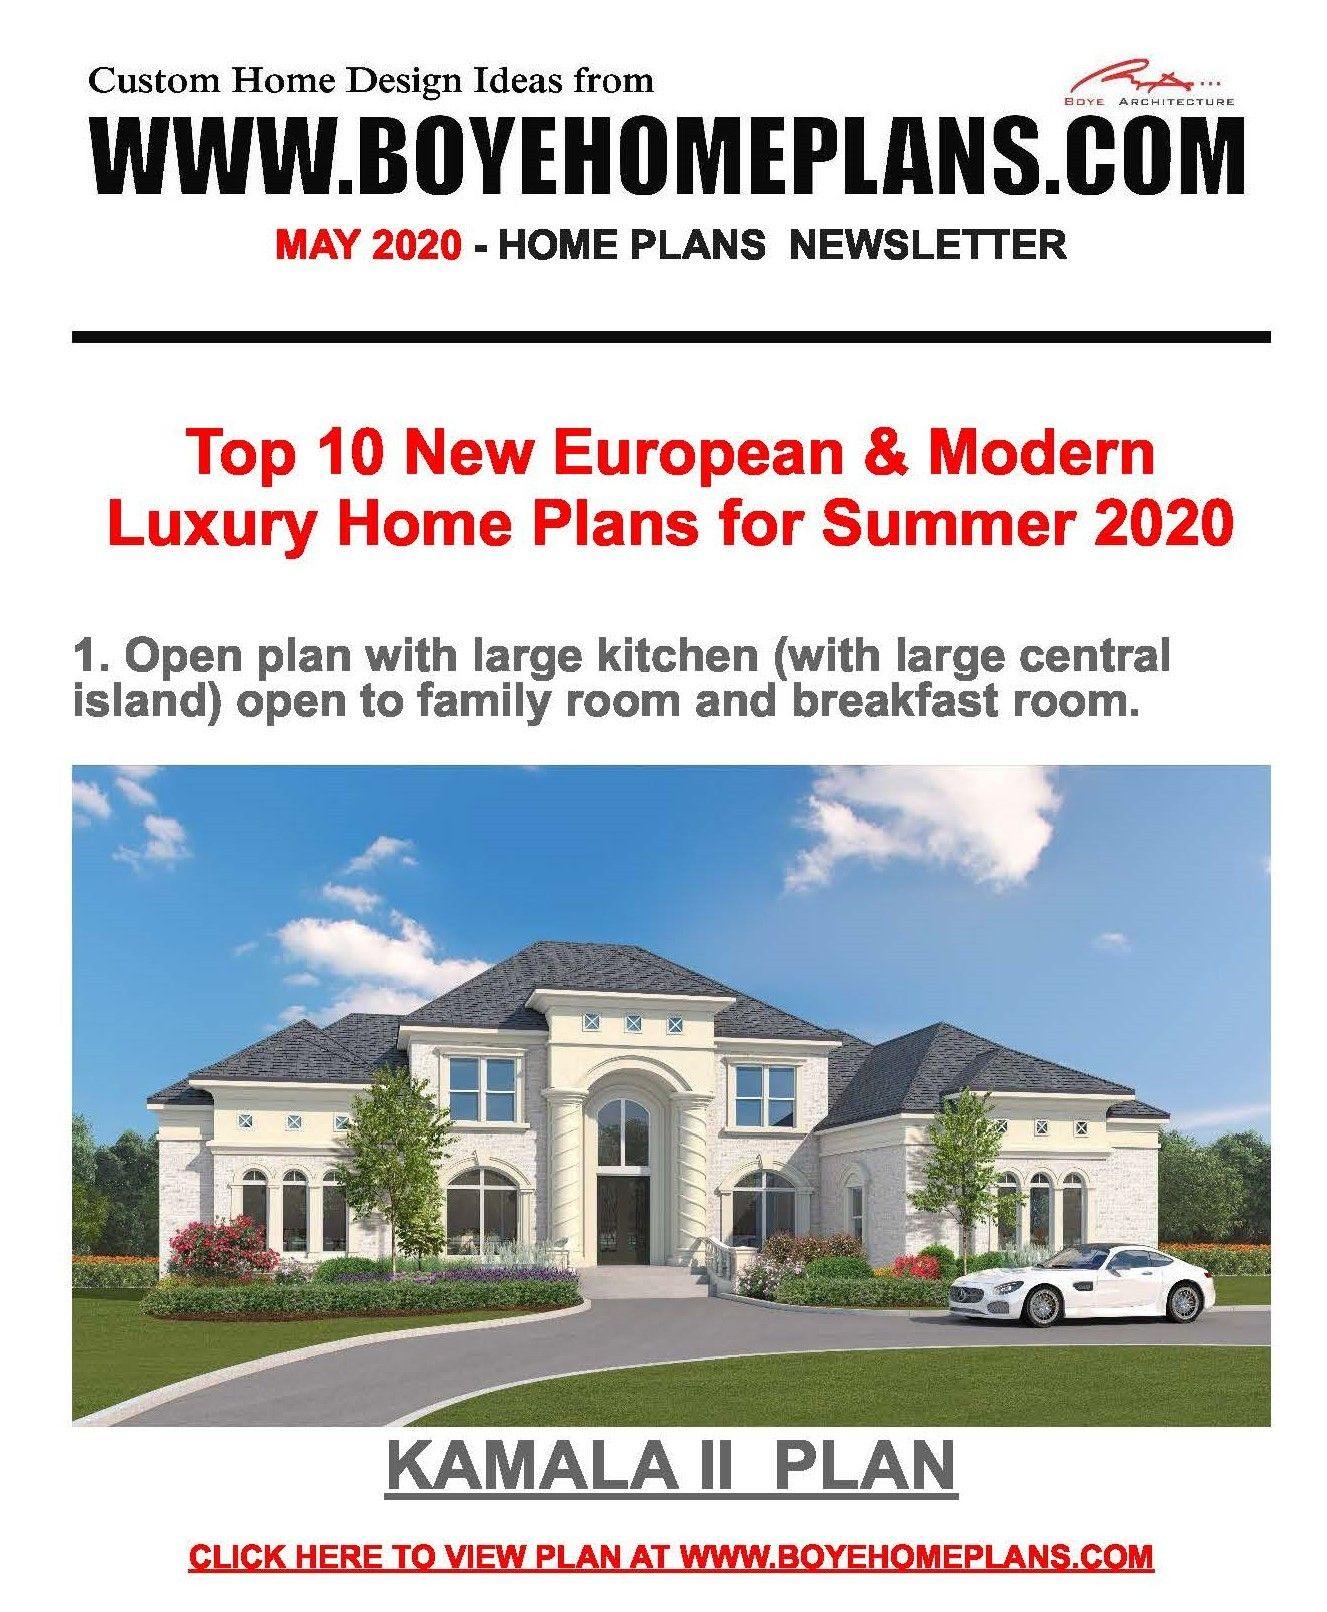 Top 10 New Plans For Summer 2020 From Boyehomeplans Com Luxury House Plans Custom Home Designs Luxury Homes